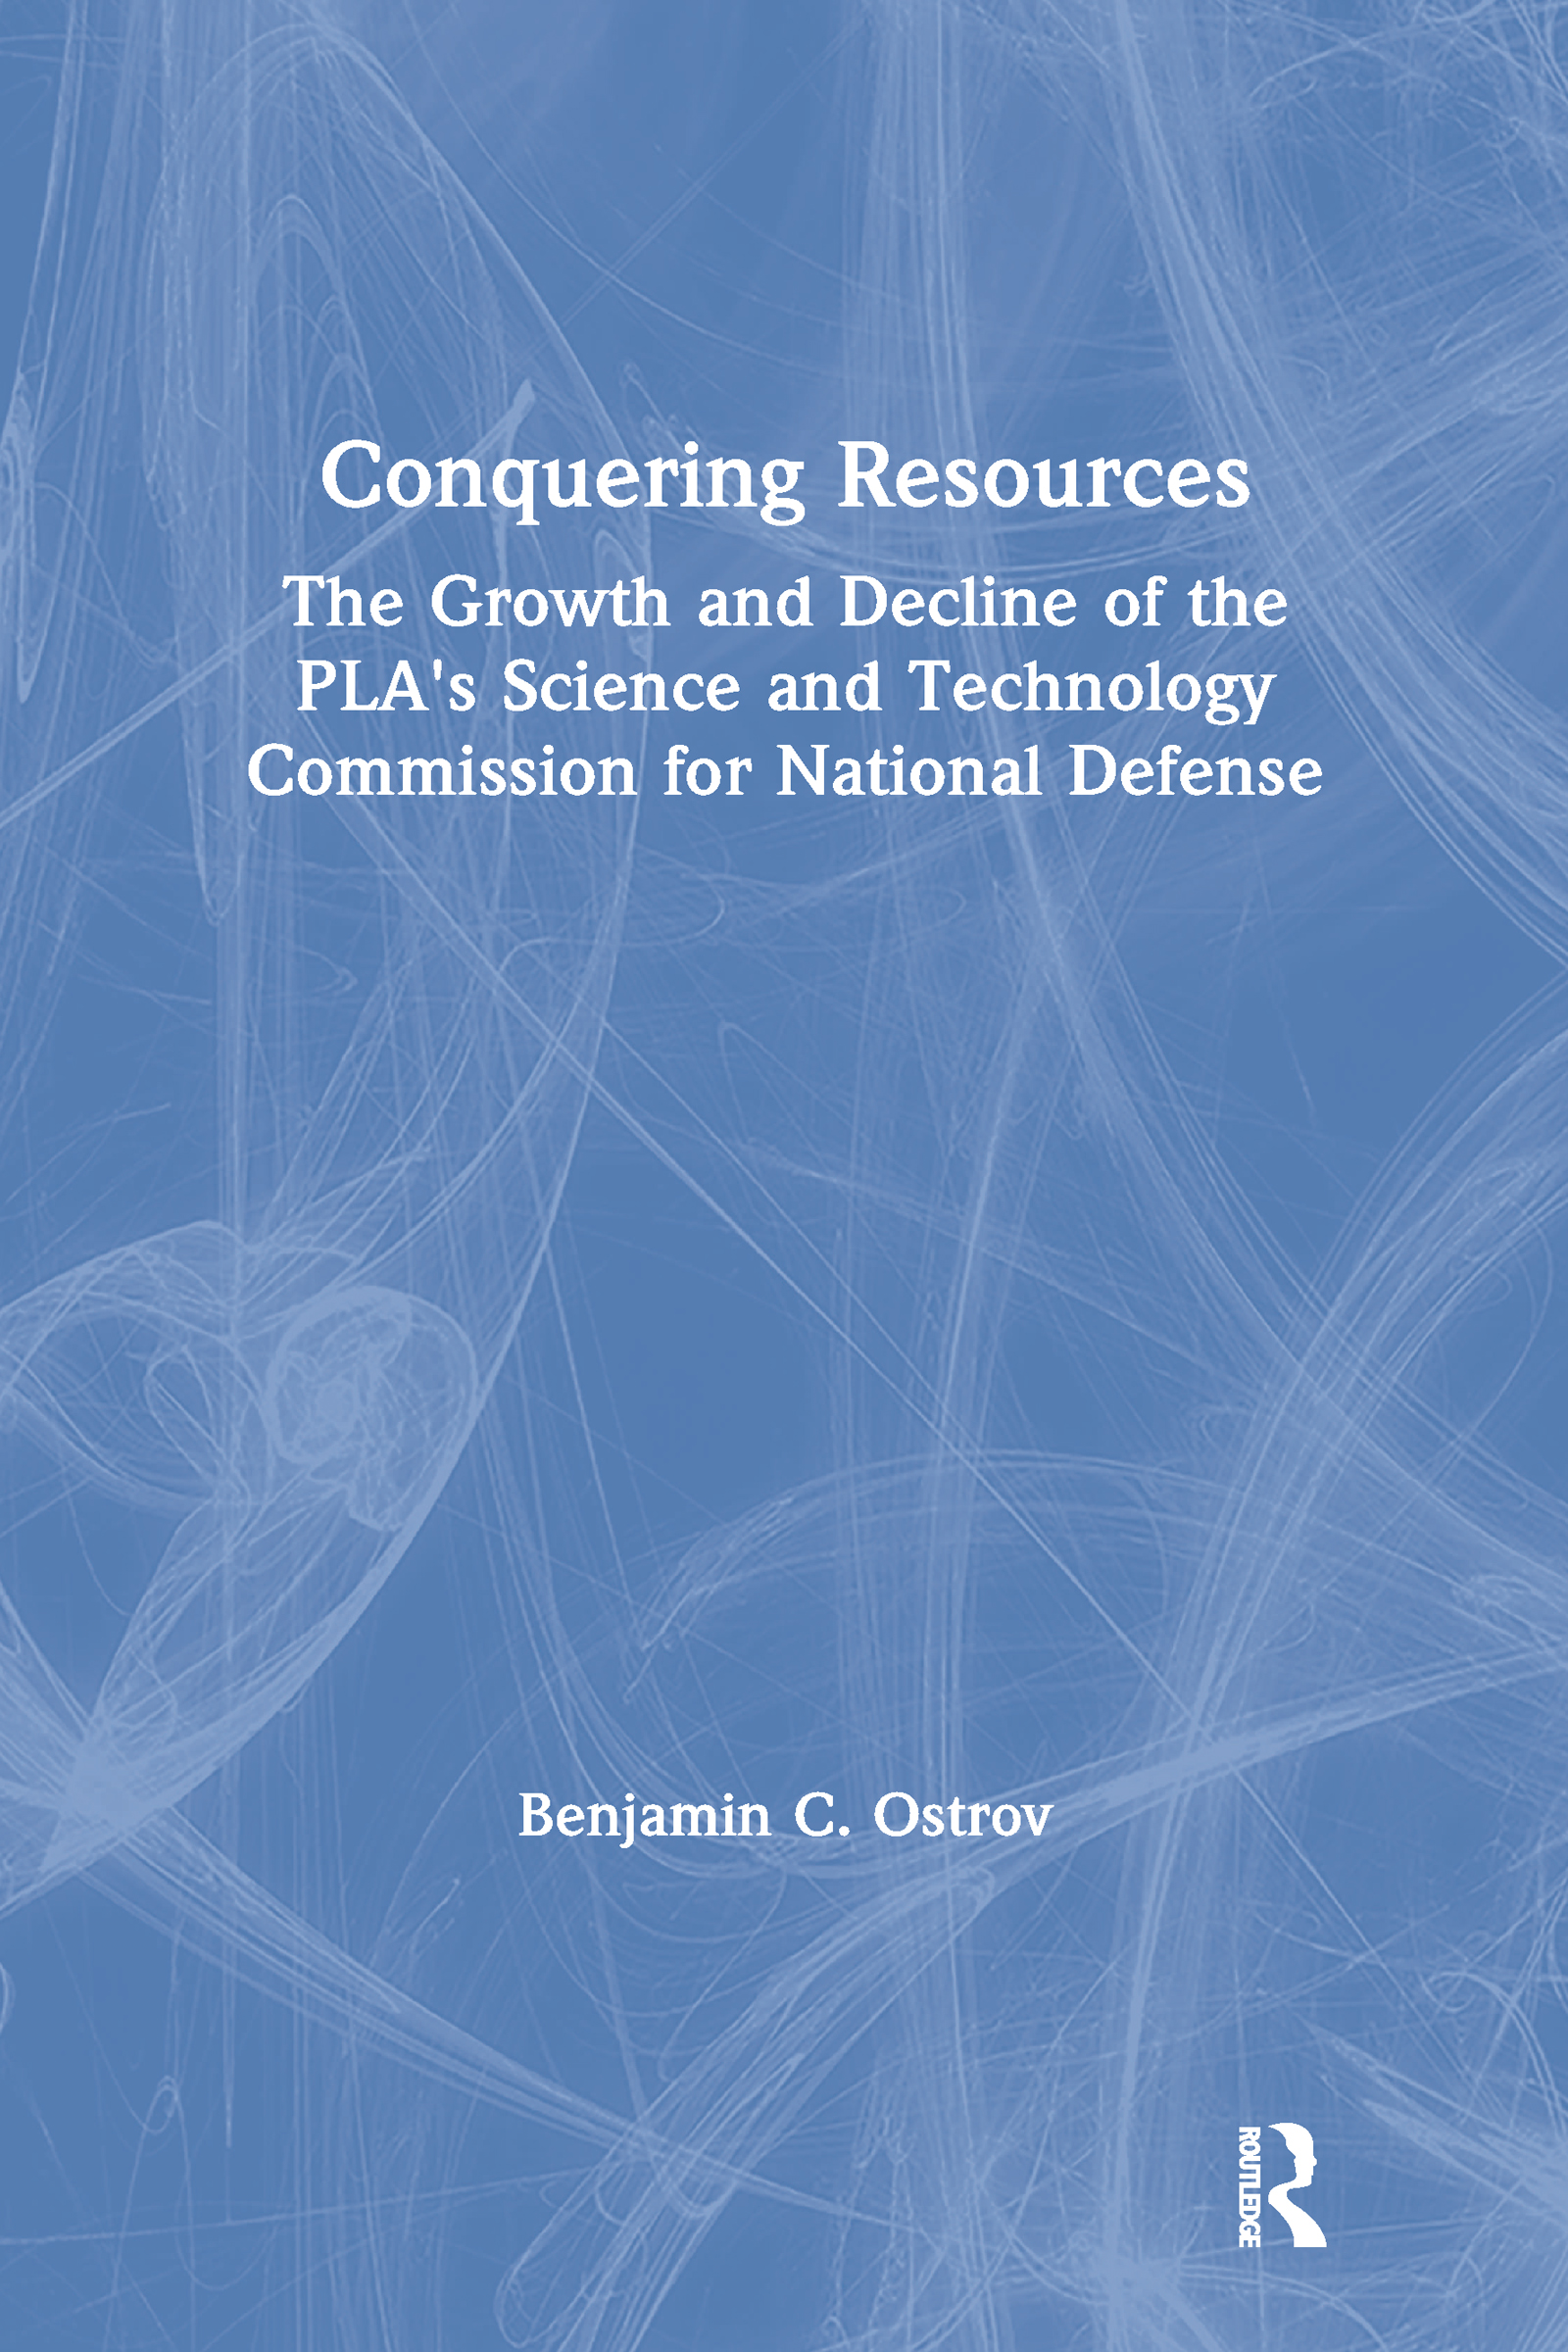 Conquering Resources: The Growth and Decline of the PLA's Science and Technology Commission for National Defense: The Growth and Decline of the PLA's Science and Technology Commission for National Defense book cover